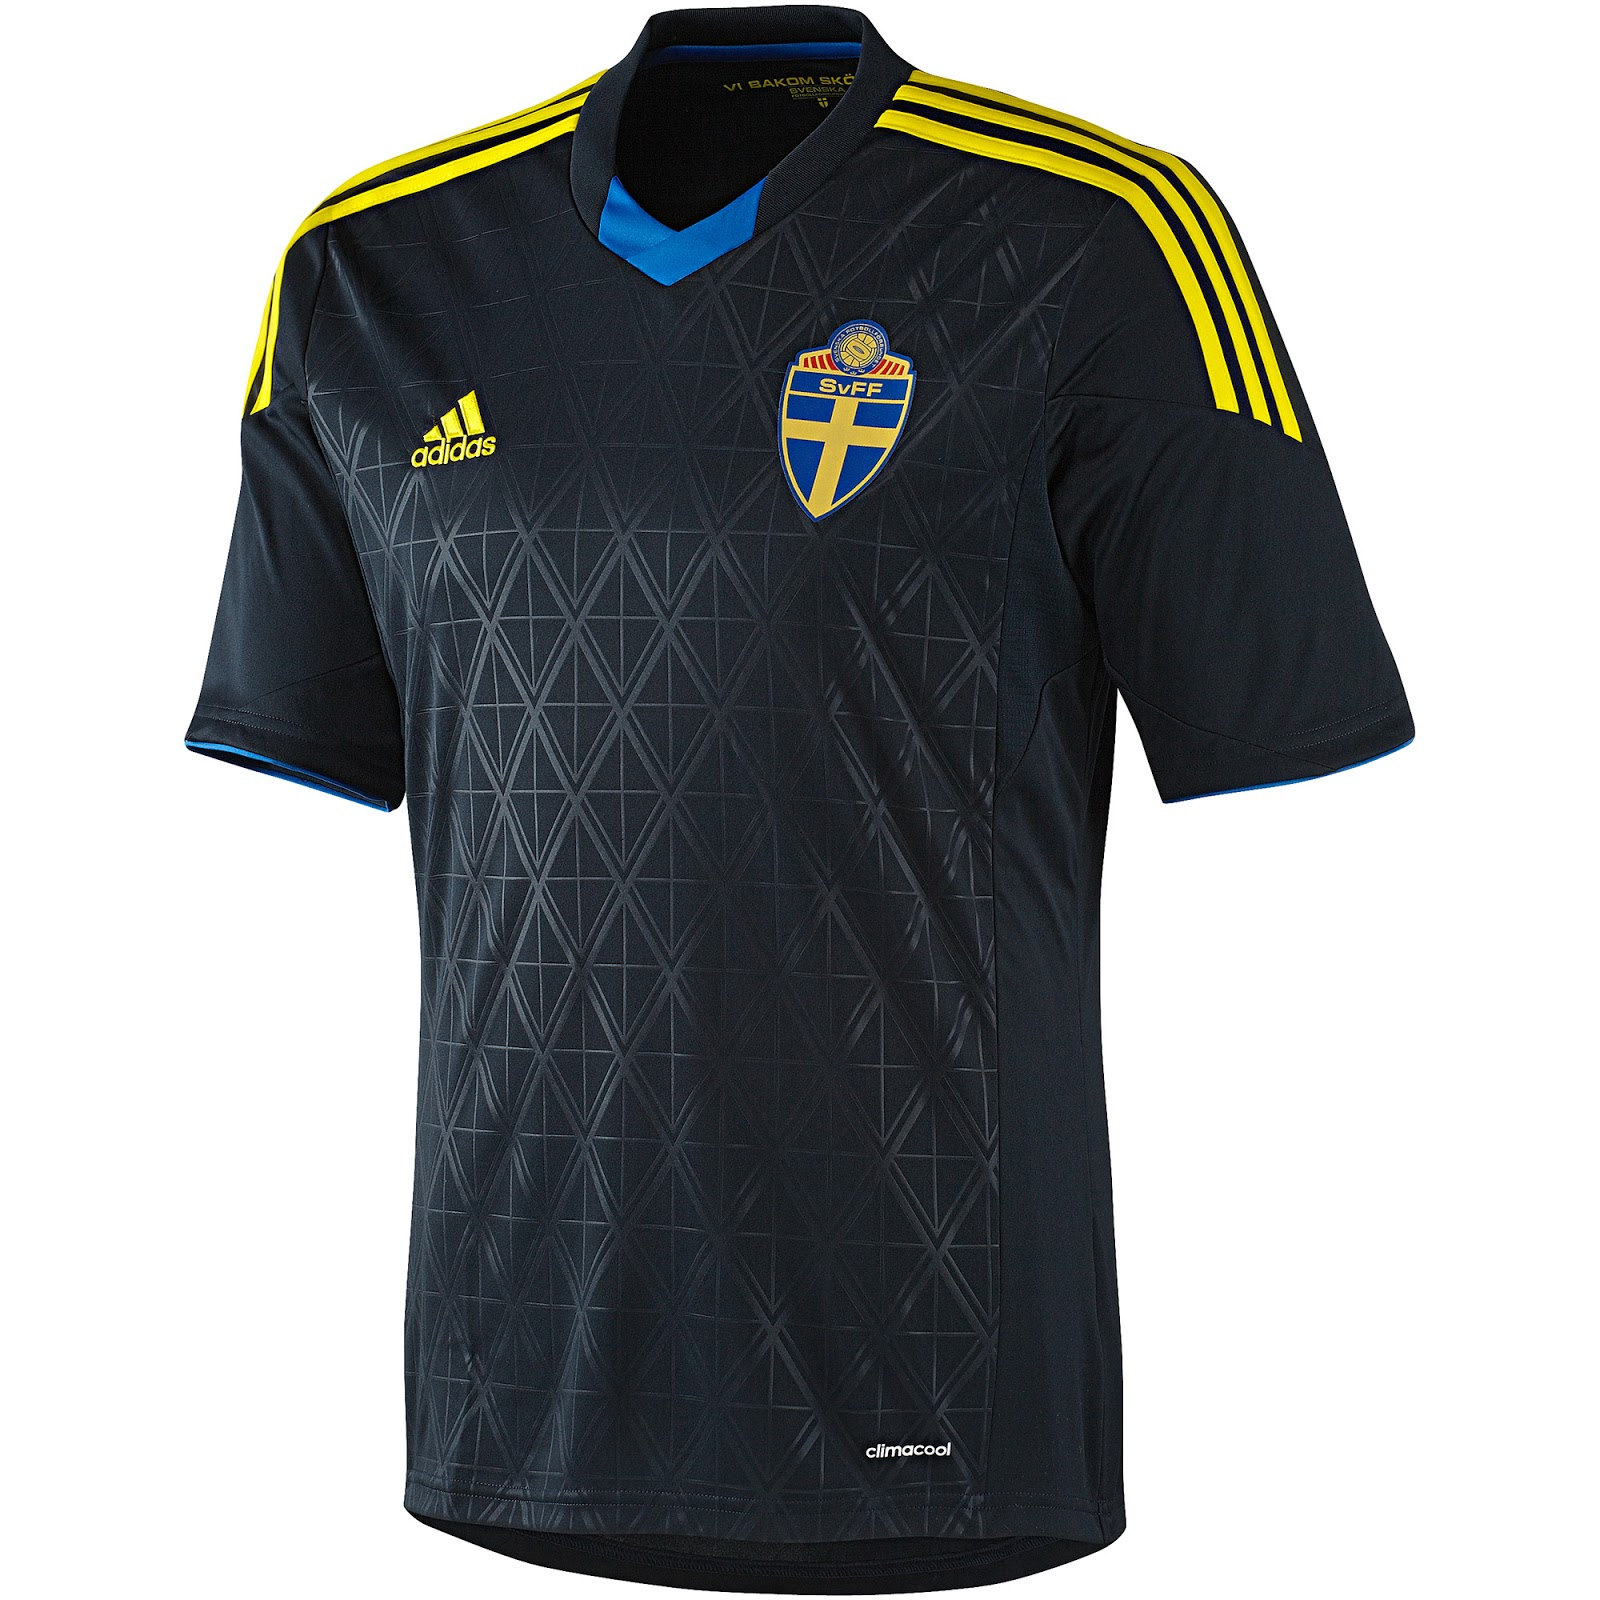 Released Shirts - Footy Headlines Adidas 13-14 Sweden